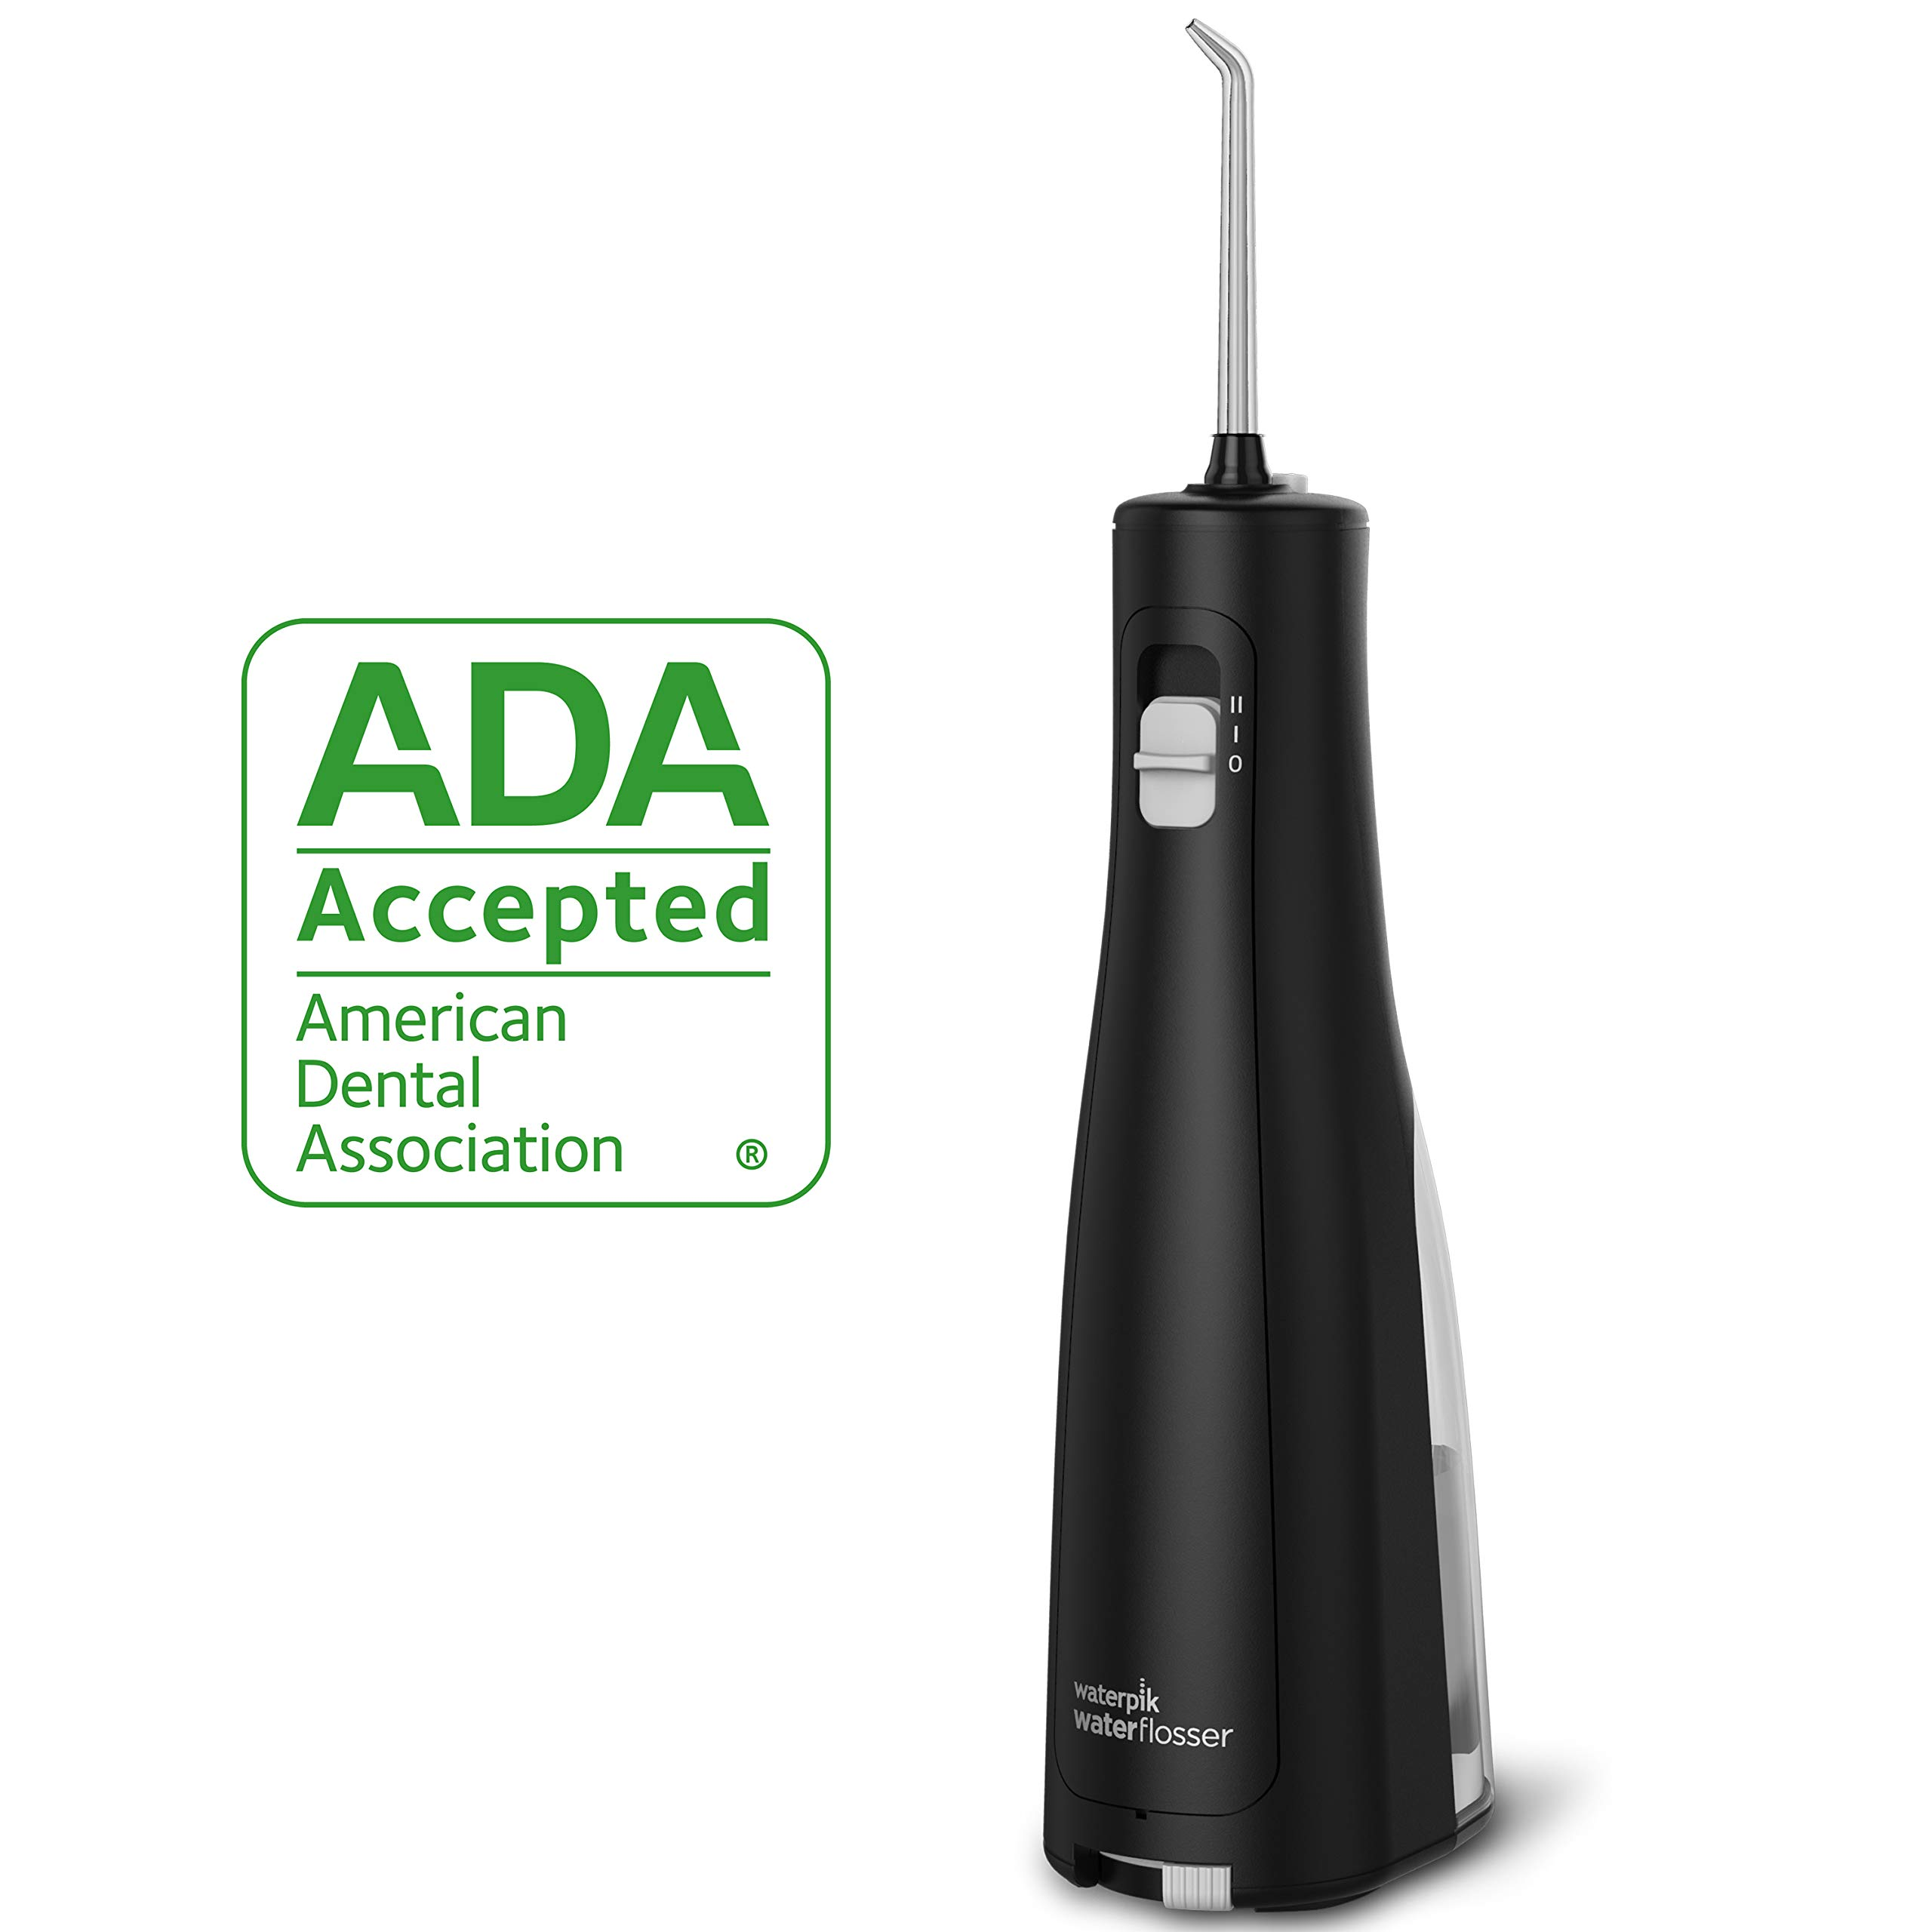 Waterpik Cordless Freedom ADA Accepted Oral Irrigator, Battery Operated & Portable for Travel & Home, WF-03